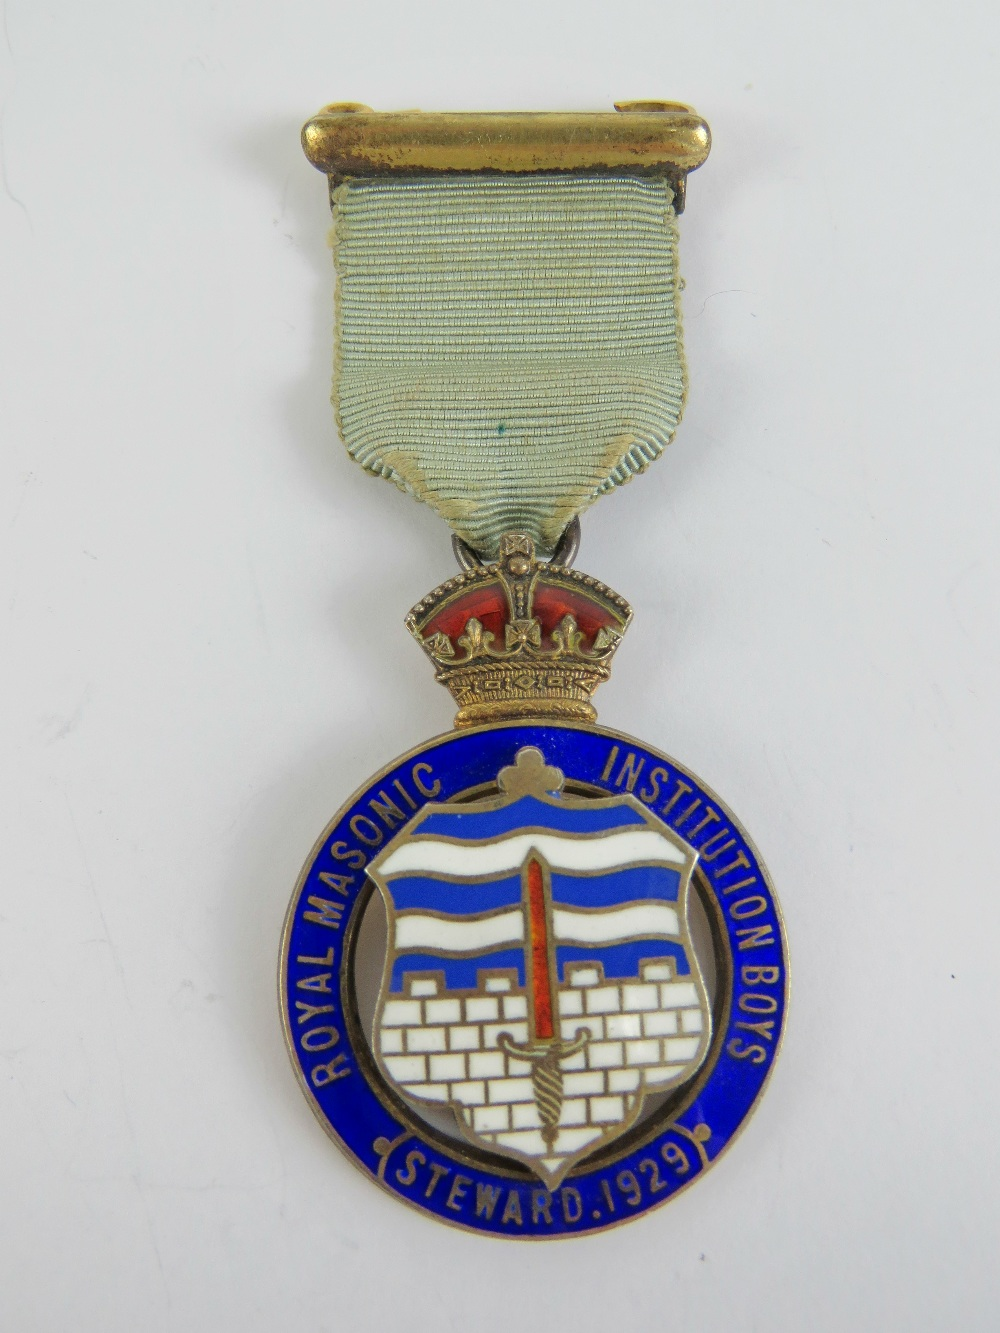 Lot 50 - Masonic; A HM silver and enamel Royal Masonic Institution Boys (Steward 1929) jewel medal.